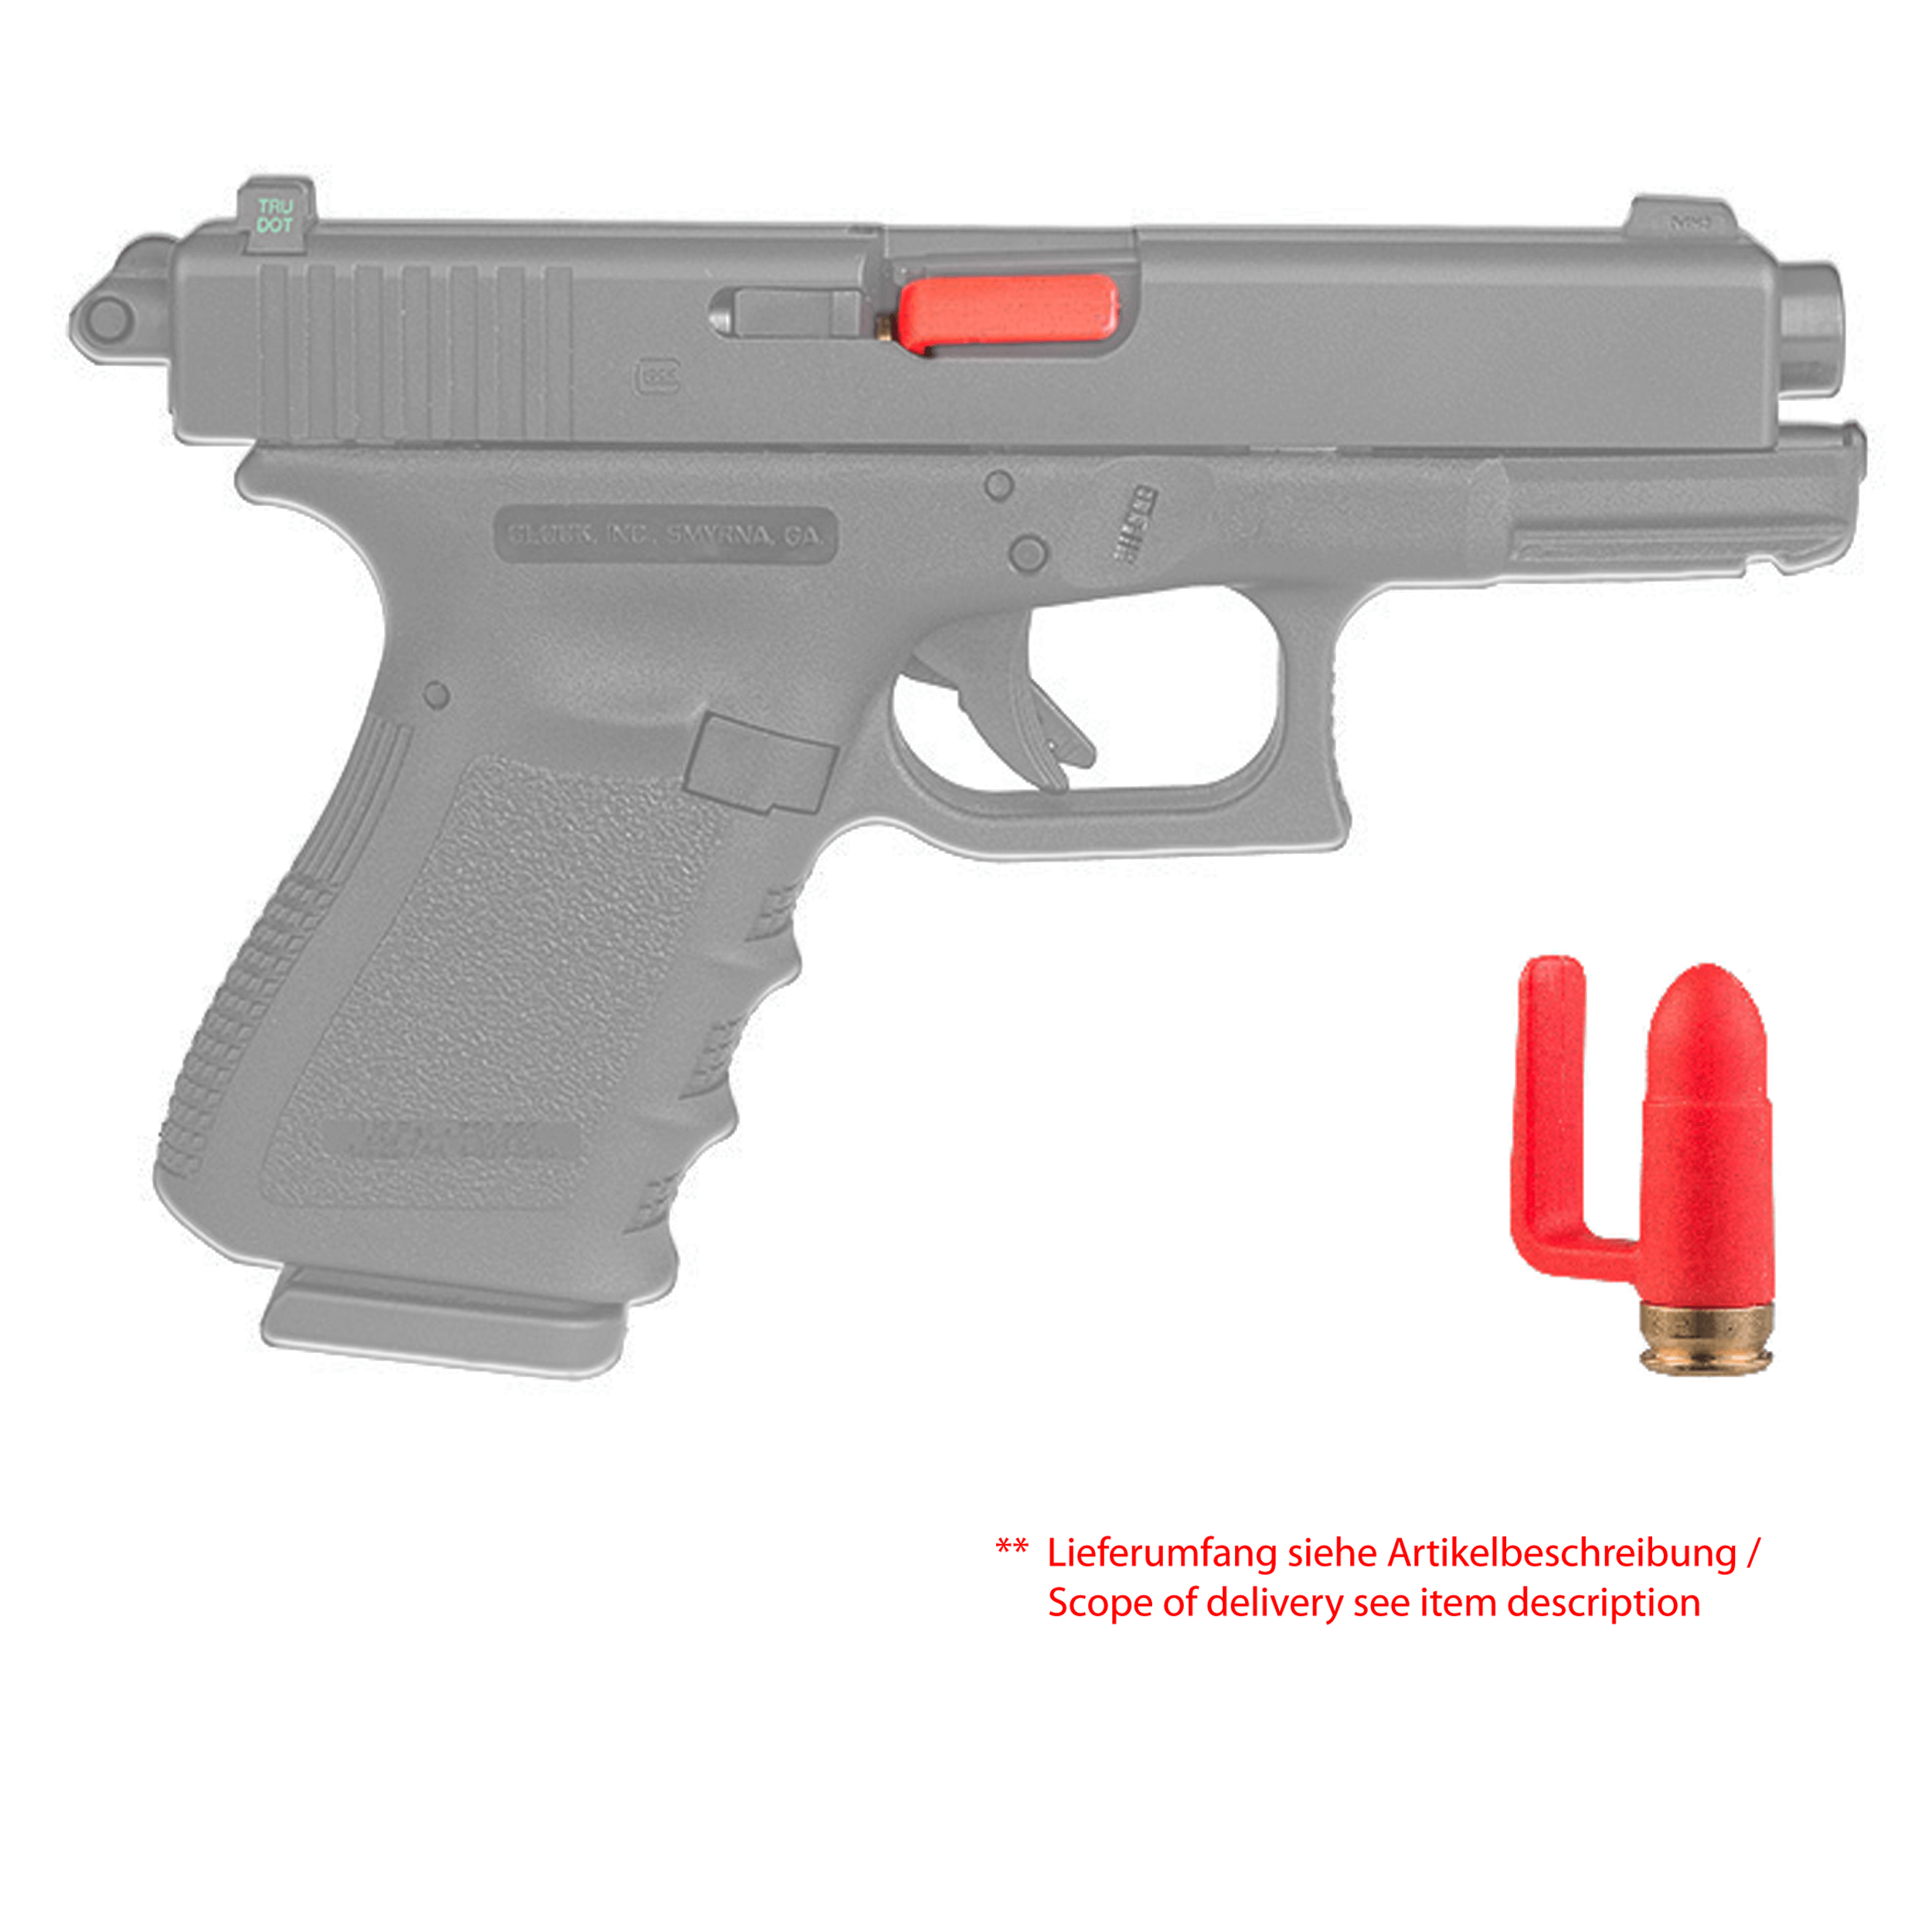 Tactical Barrel Blocker in Calibre 9mm (5 Pieces)